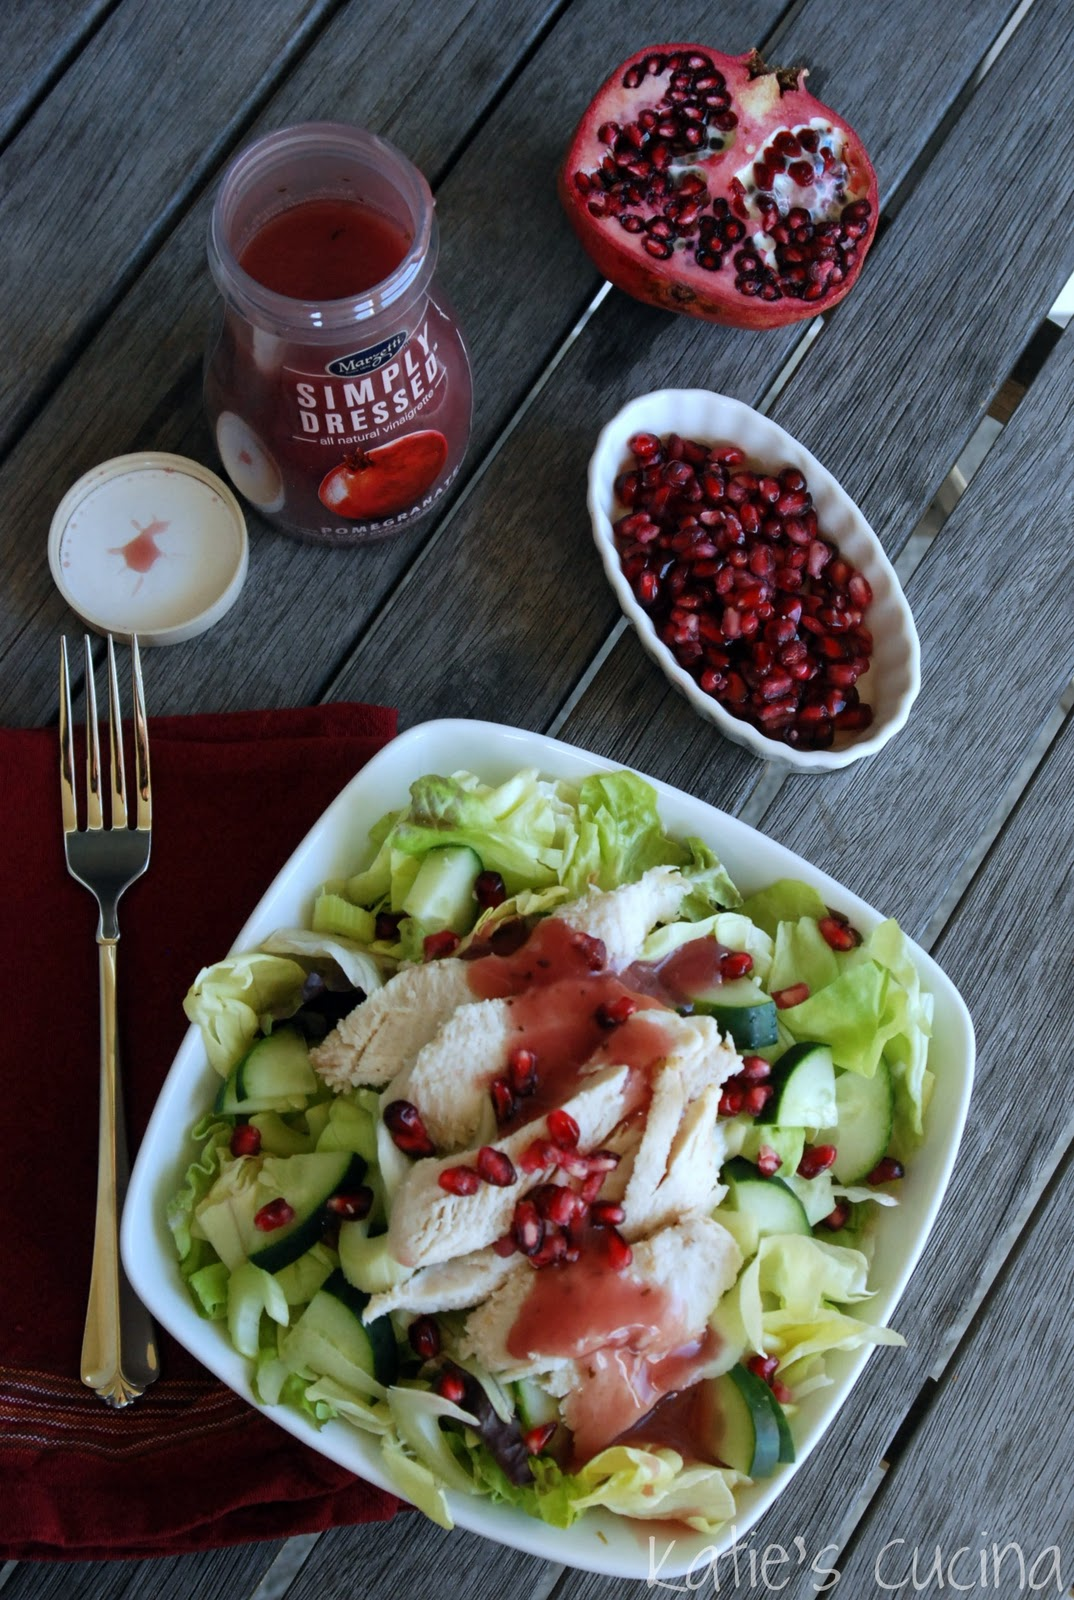 Wildfire salad dressing where to buy